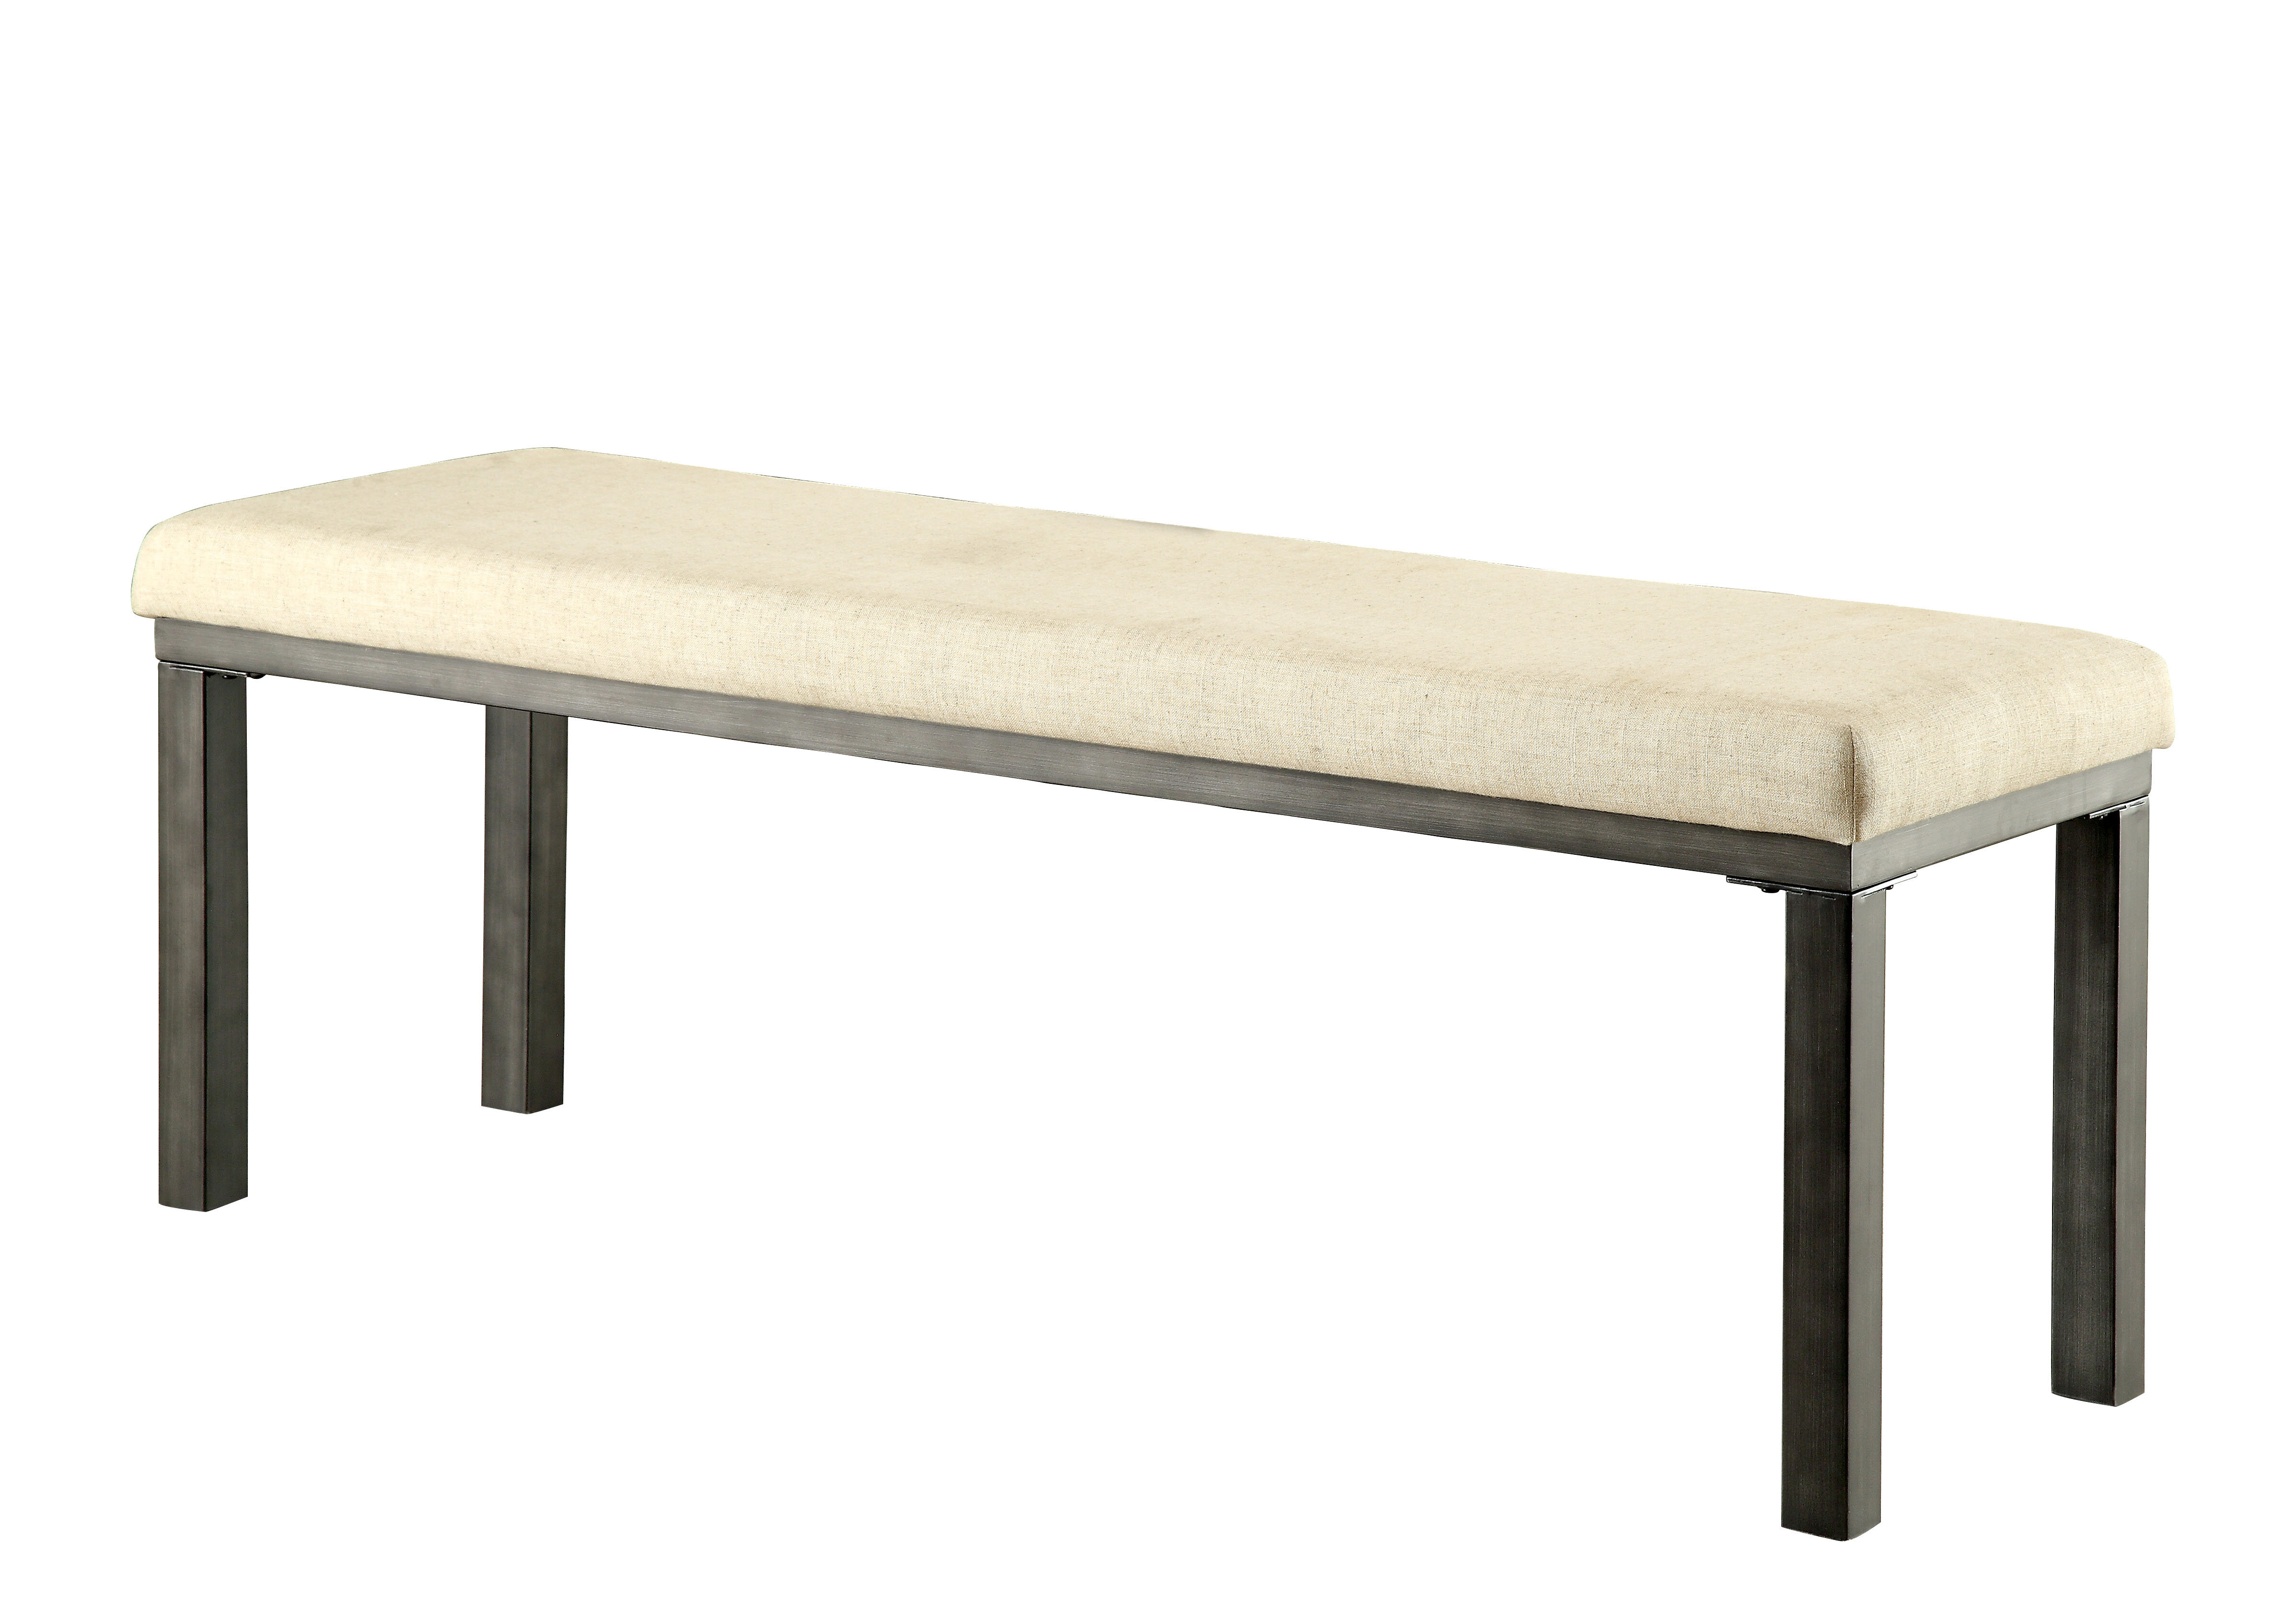 upholstered kitchen bench build in thurman upholstered kitchen bench allmodern